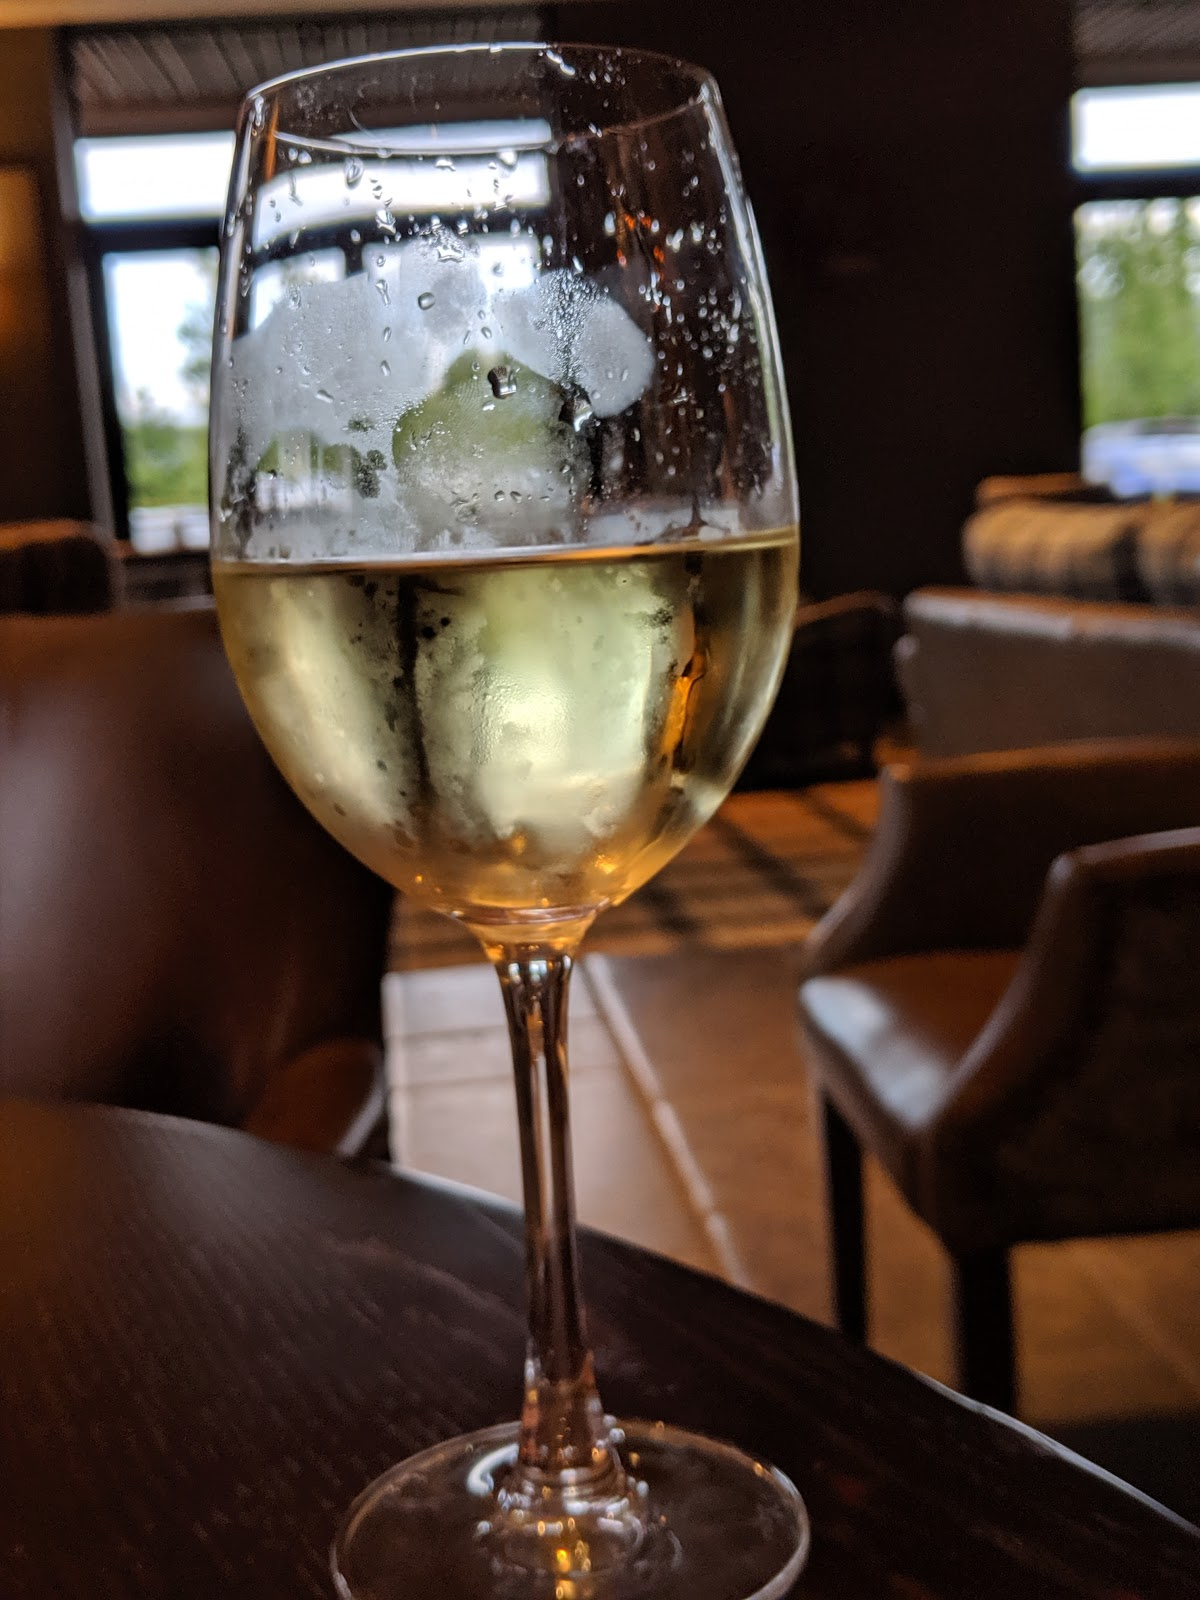 A Short Break at Cameron Lodges, Loch Lomond - cameron lodges clubhouse wine